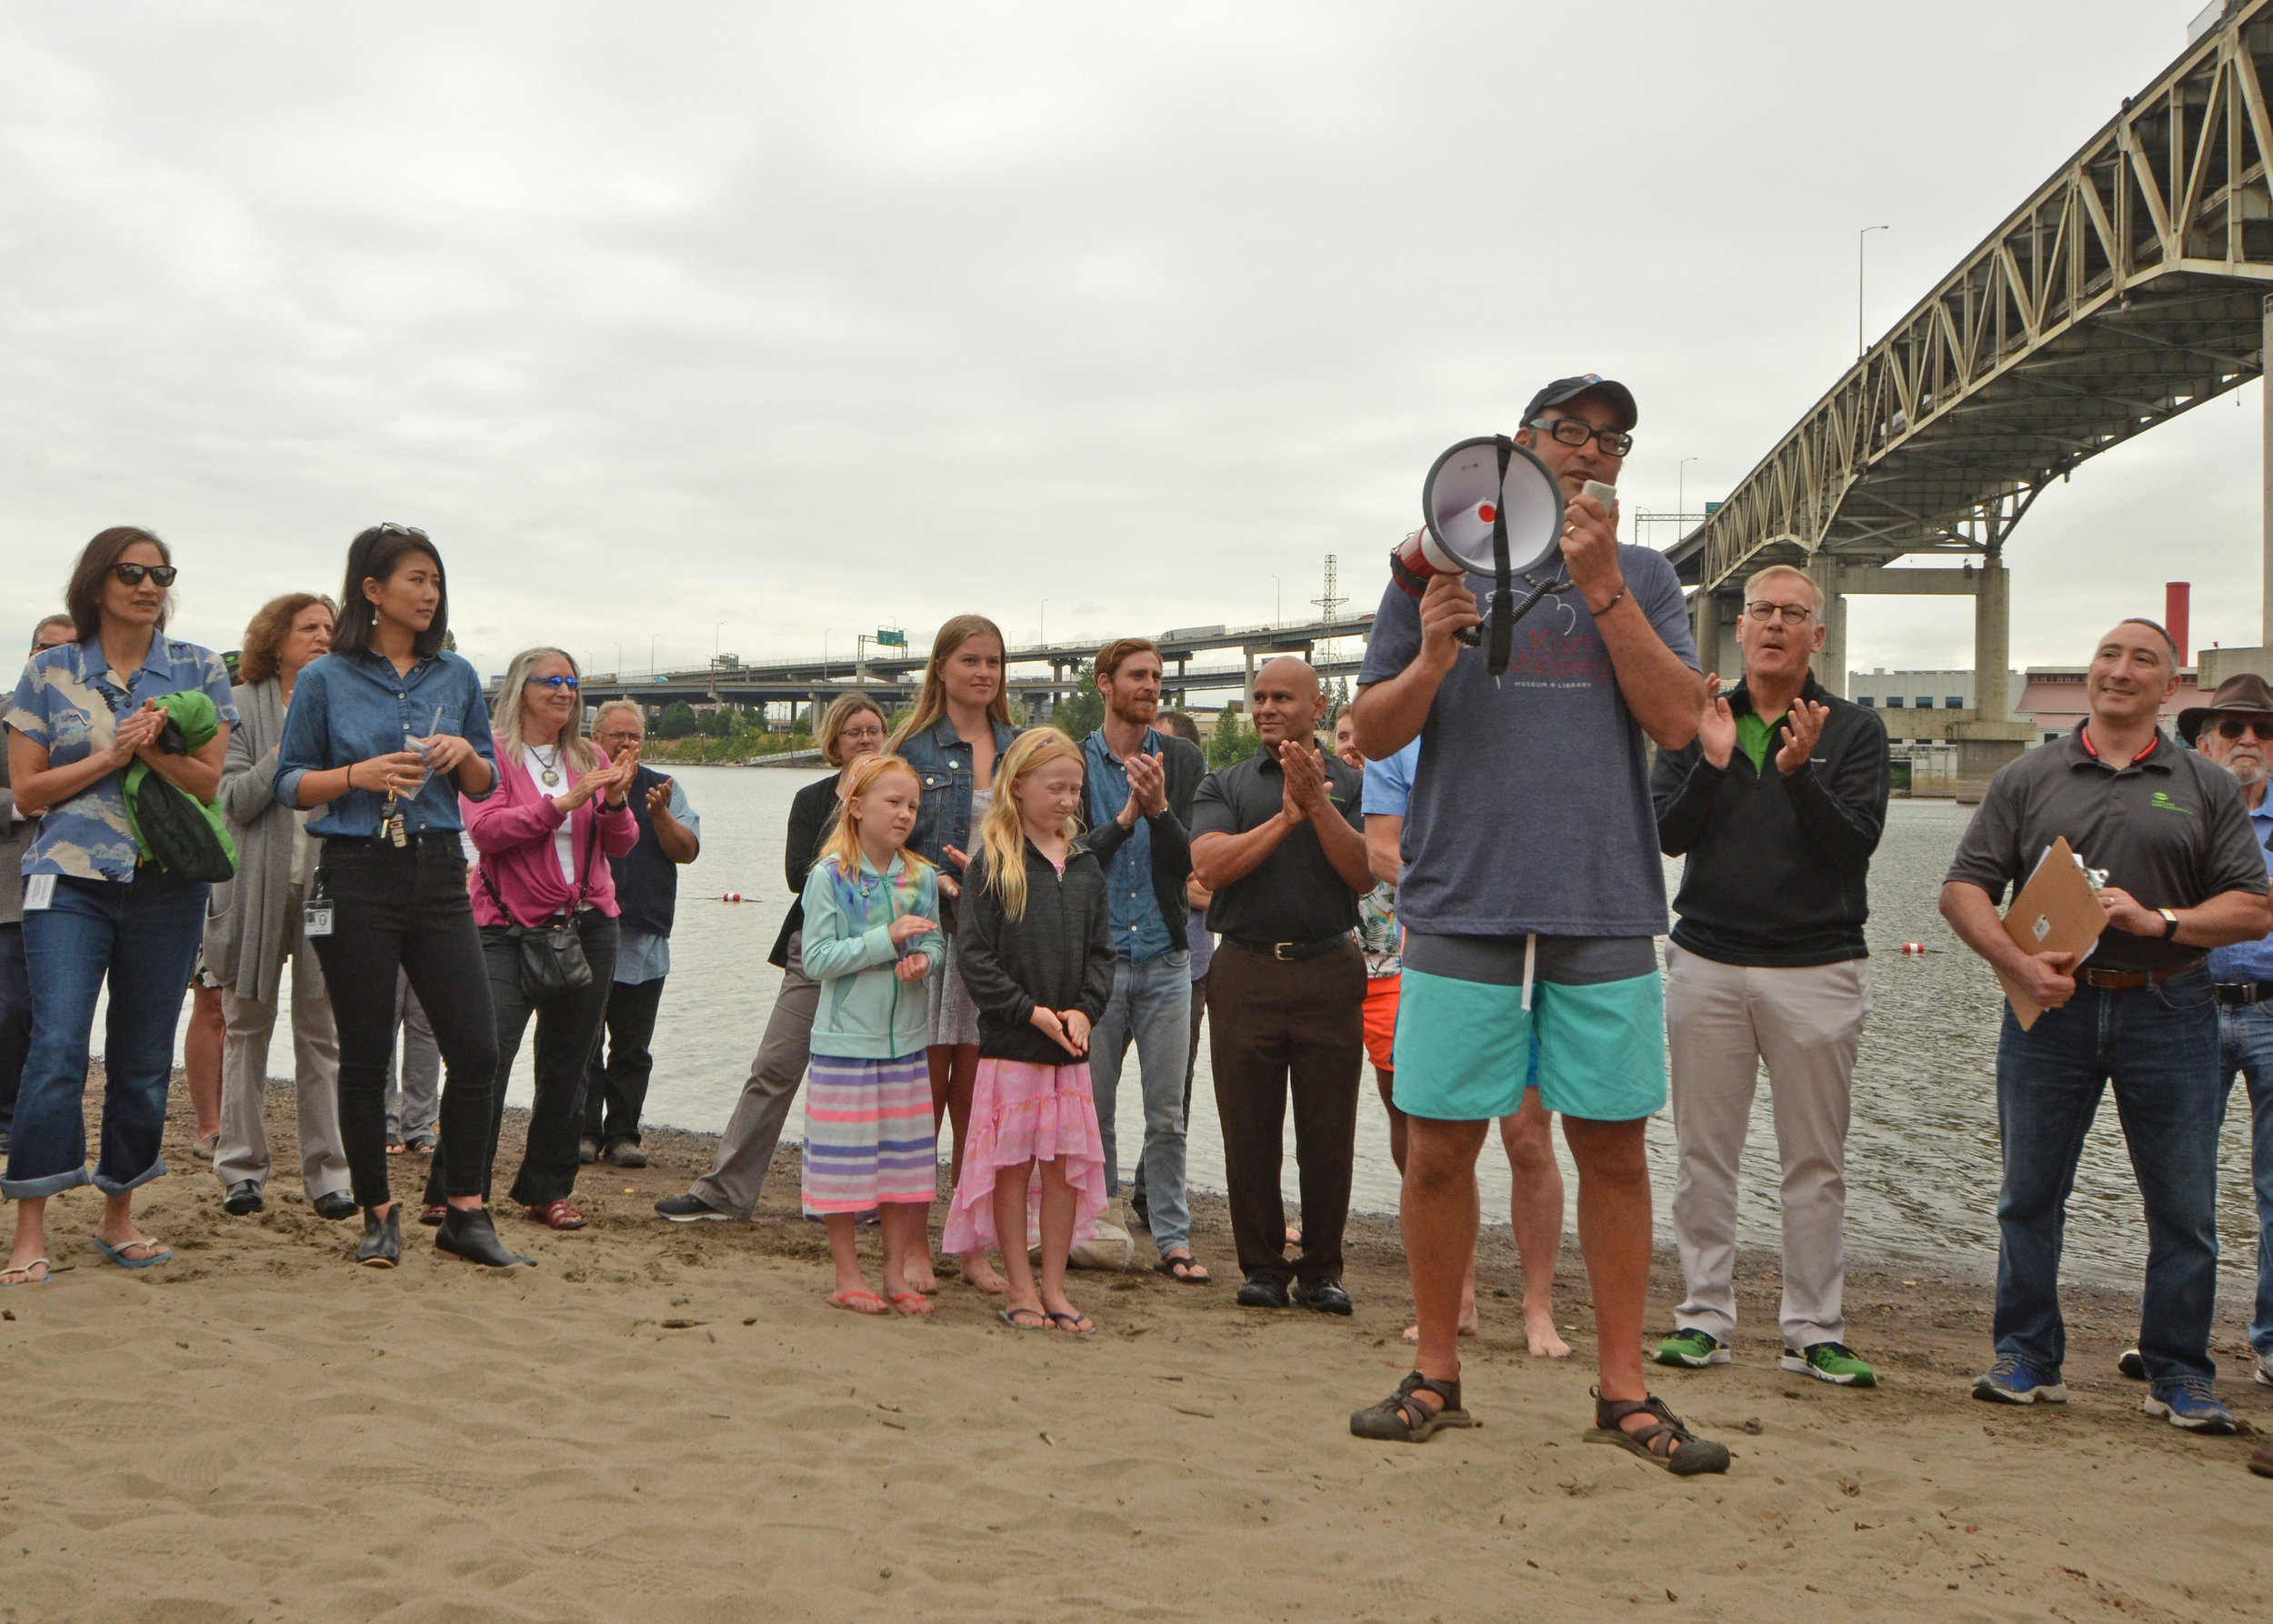 The Human Access Project's Willie Levenson gives the background on Poet's Beach and how it got its nickname.